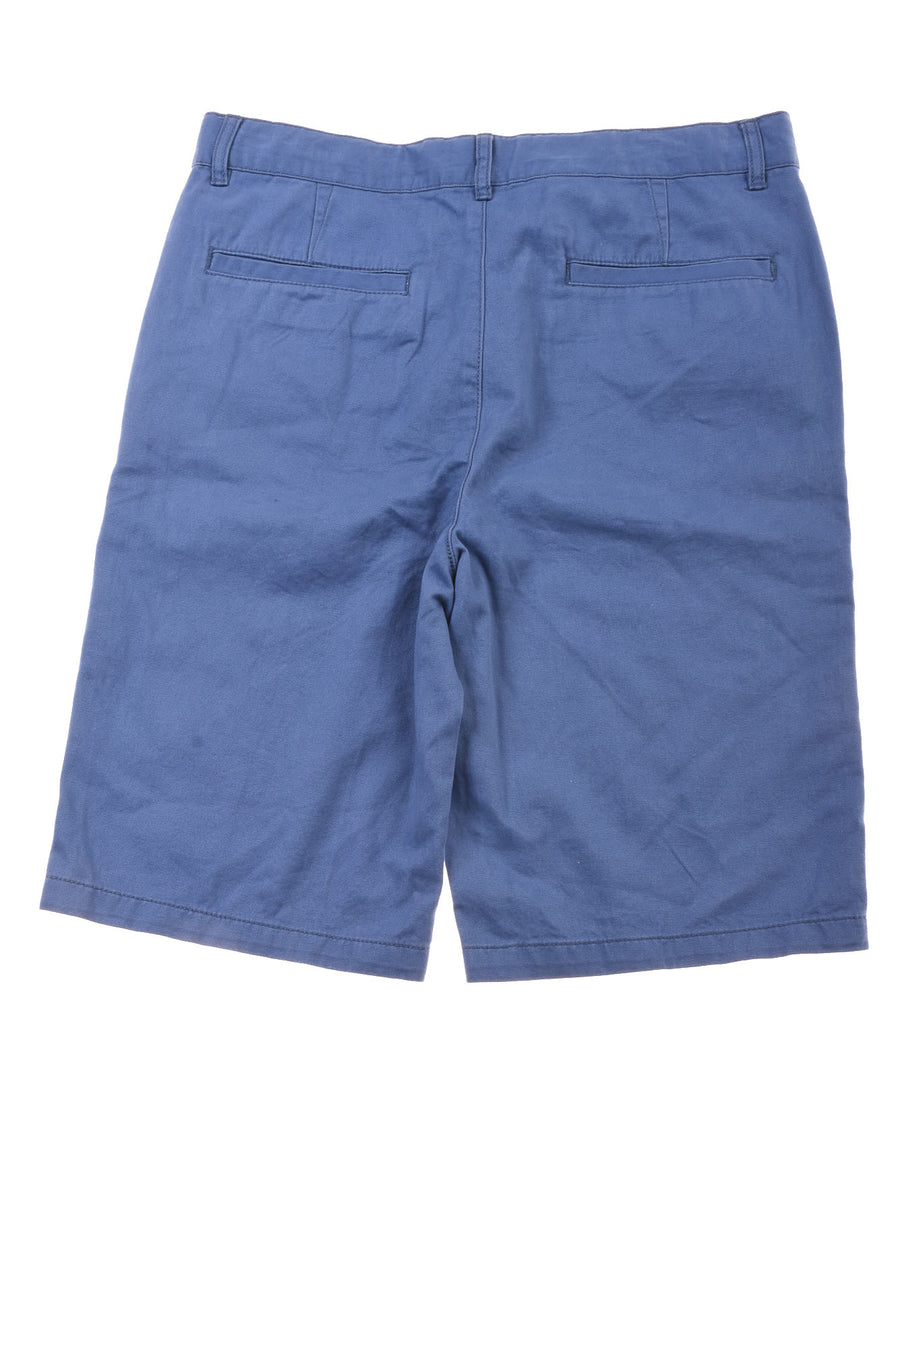 NEW The Children's Place Boy's Shorts 16 Blue